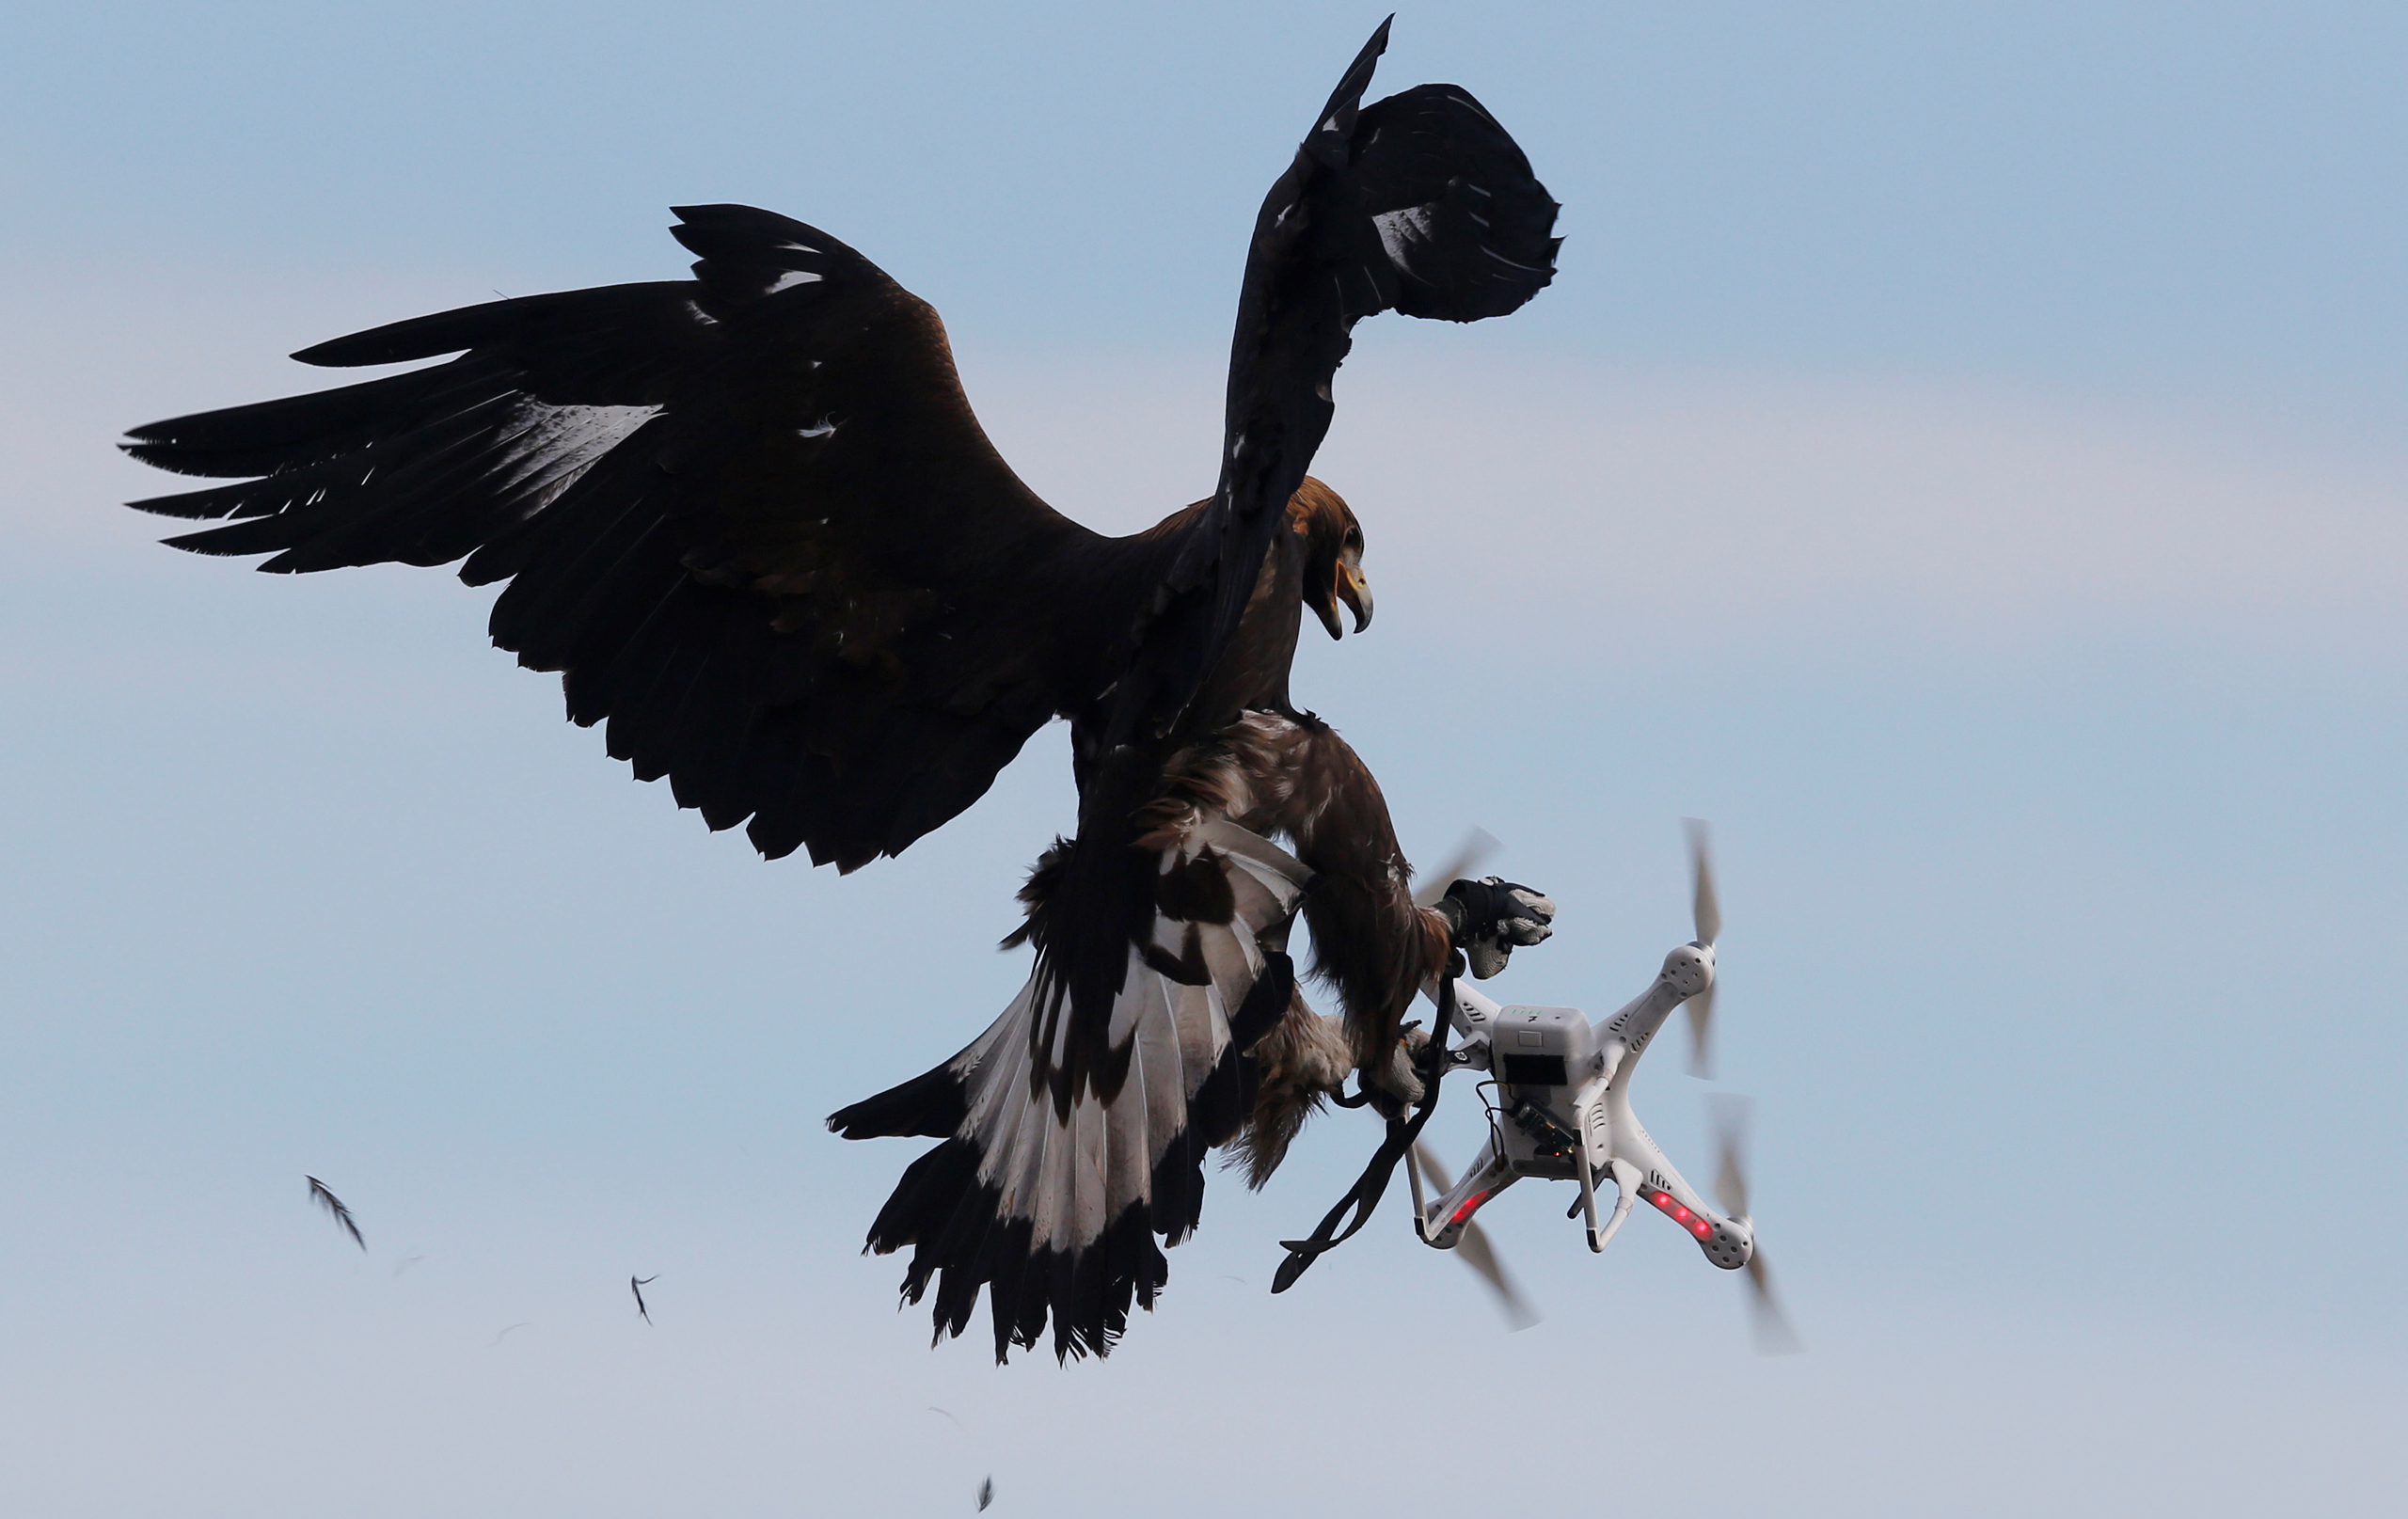 A golden eagle grabs a drone during a military training exercise at Mont de Marsan French Air Force base in southwestern France on Feb. 10, 2017.